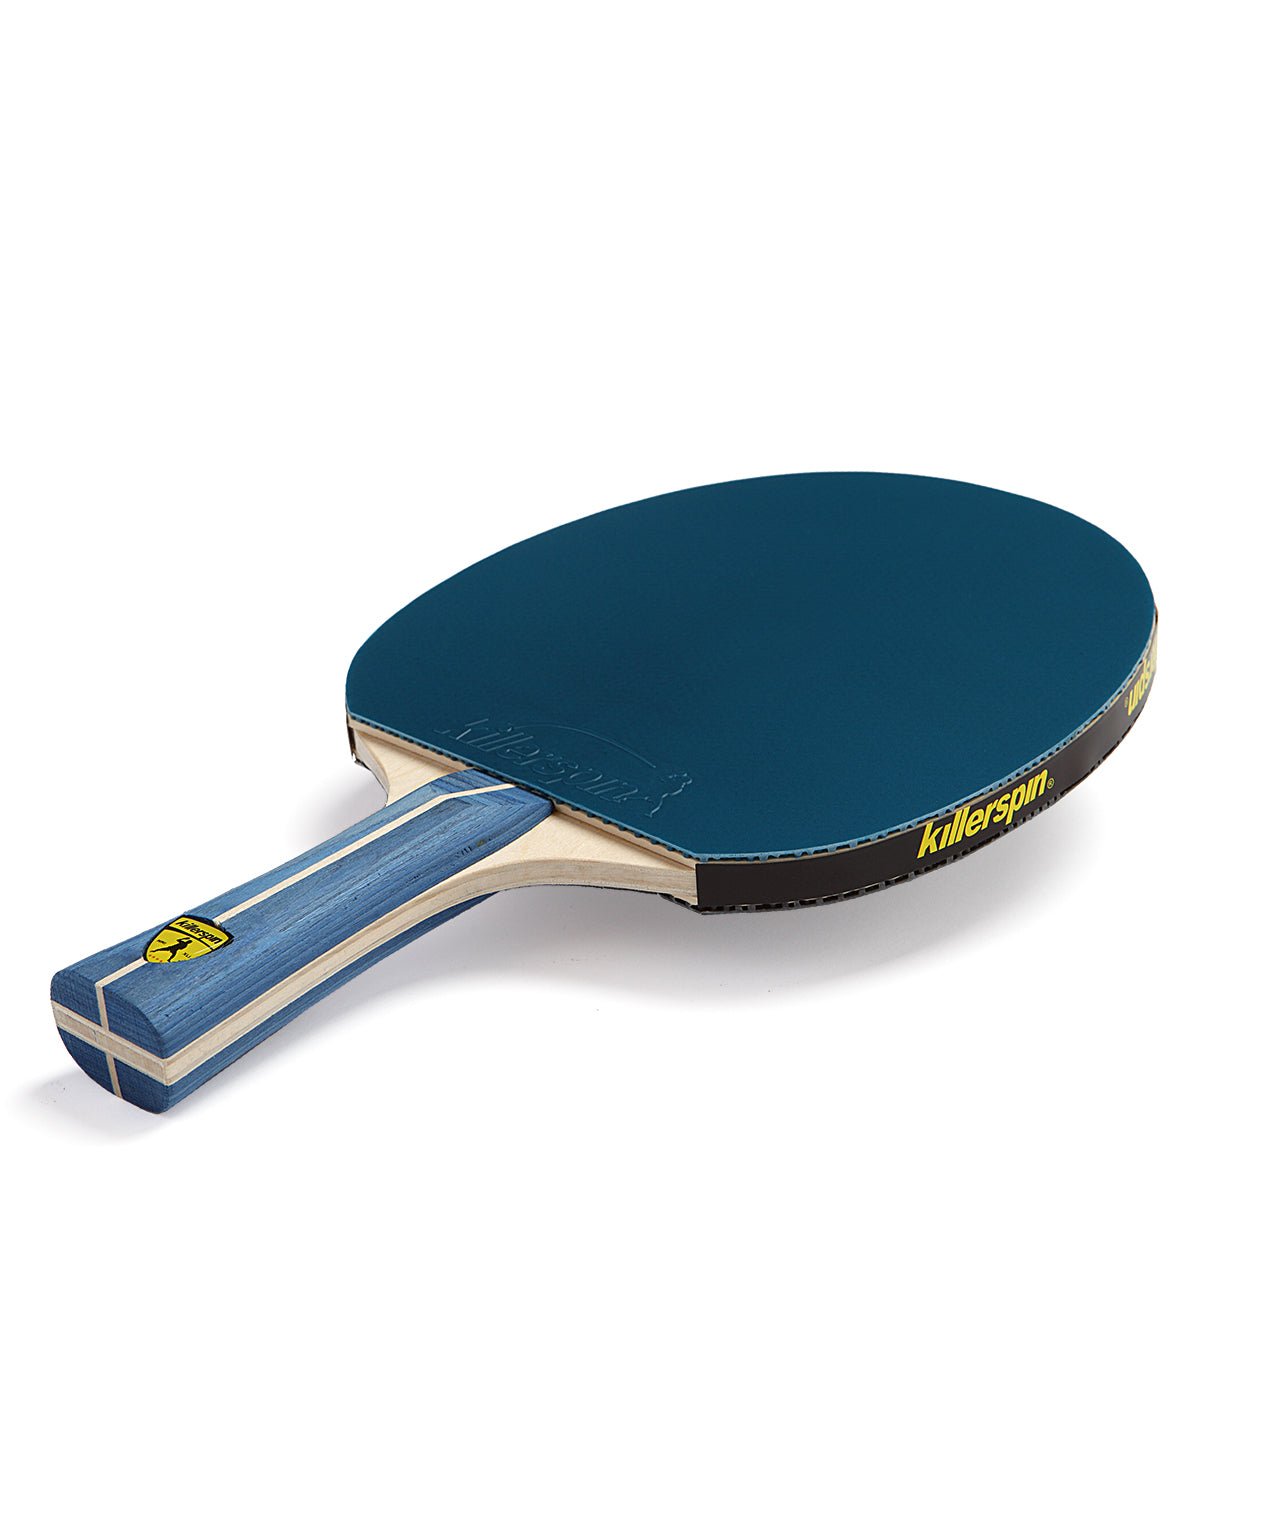 Killerspin Ping Pong Paddle Jet200 BluVannila - Blue Rubber